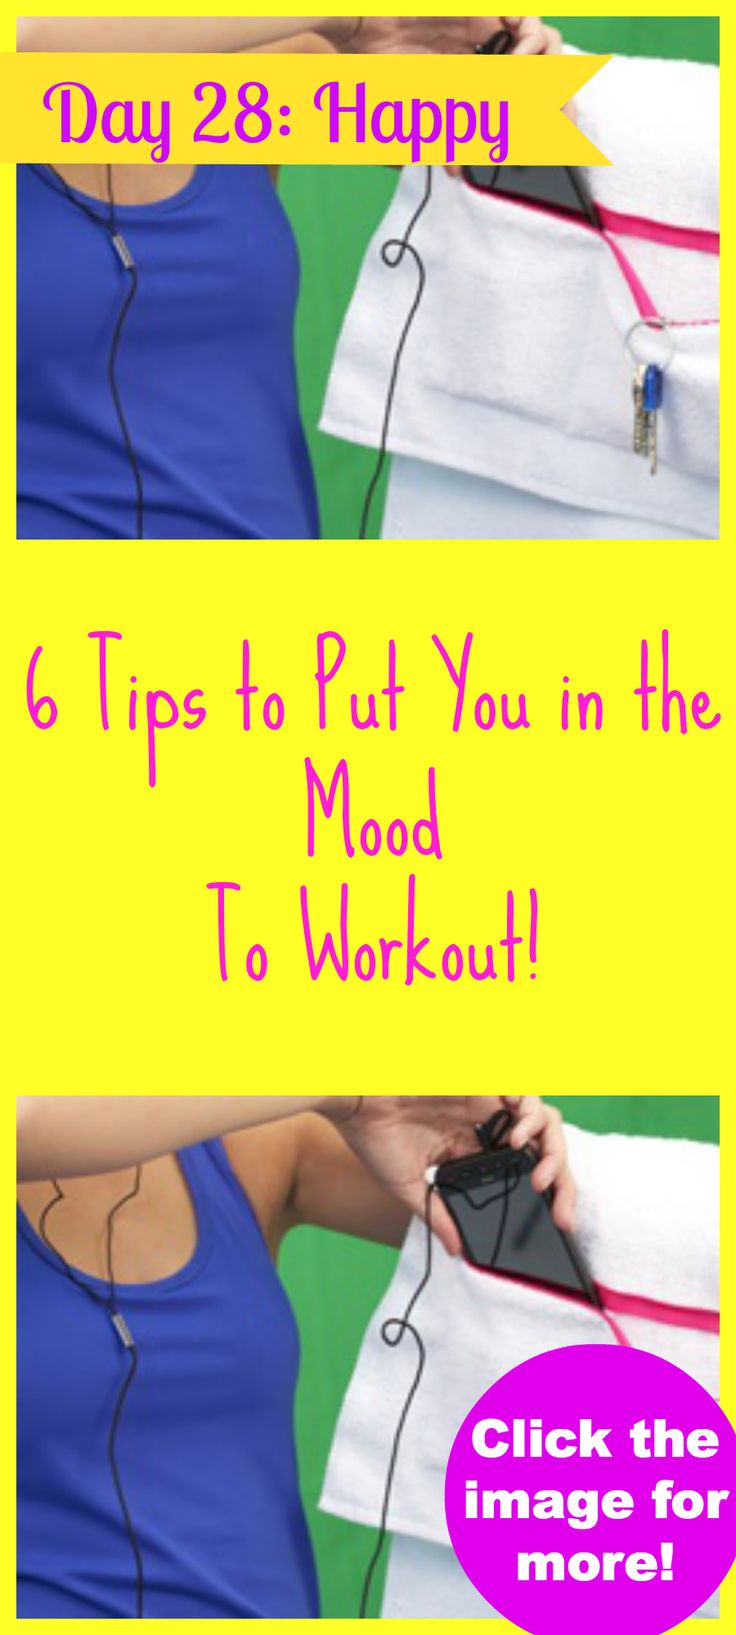 Something to be happy about! 6 tips to get you in the mood to workout!